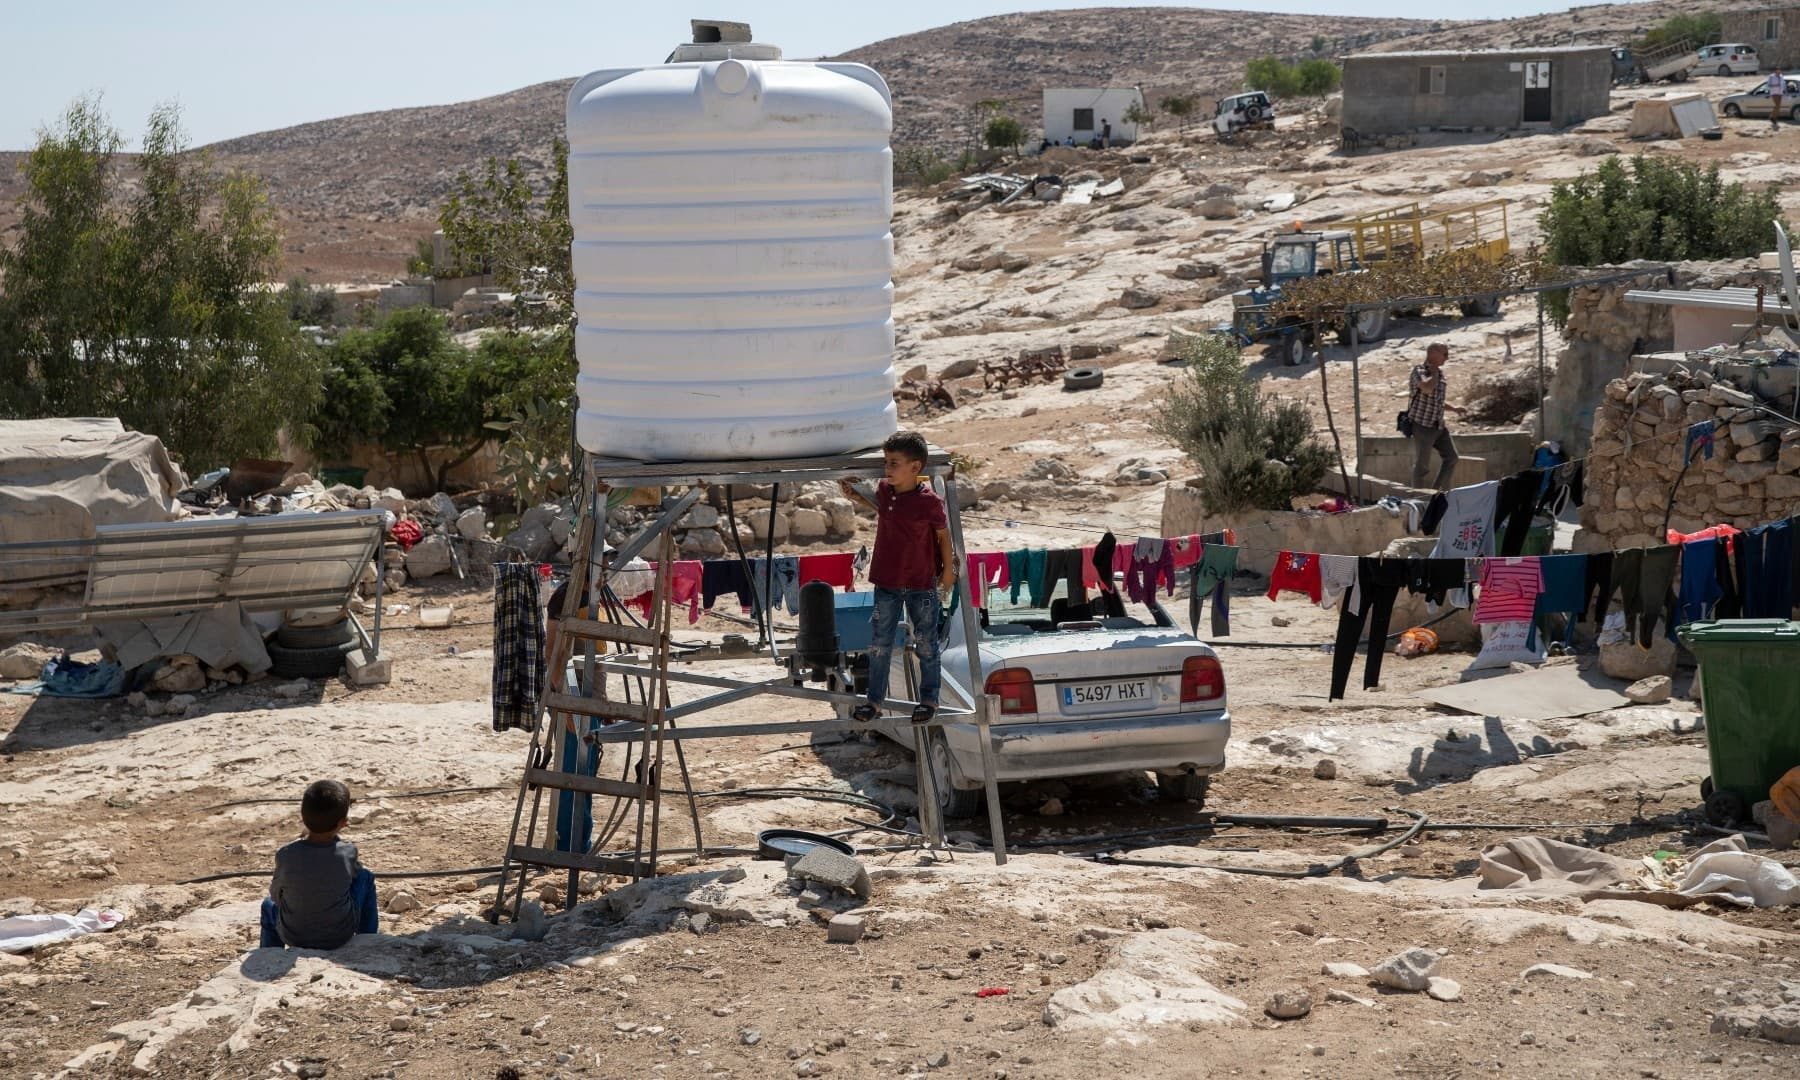 Children play by a new water tank that replaced a damaged one following a settlers' attack from nearby settlement outposts on the Palestinian Bedouin community, in the West Bank village of Al-Mufagara, on Sept. 30. — AP